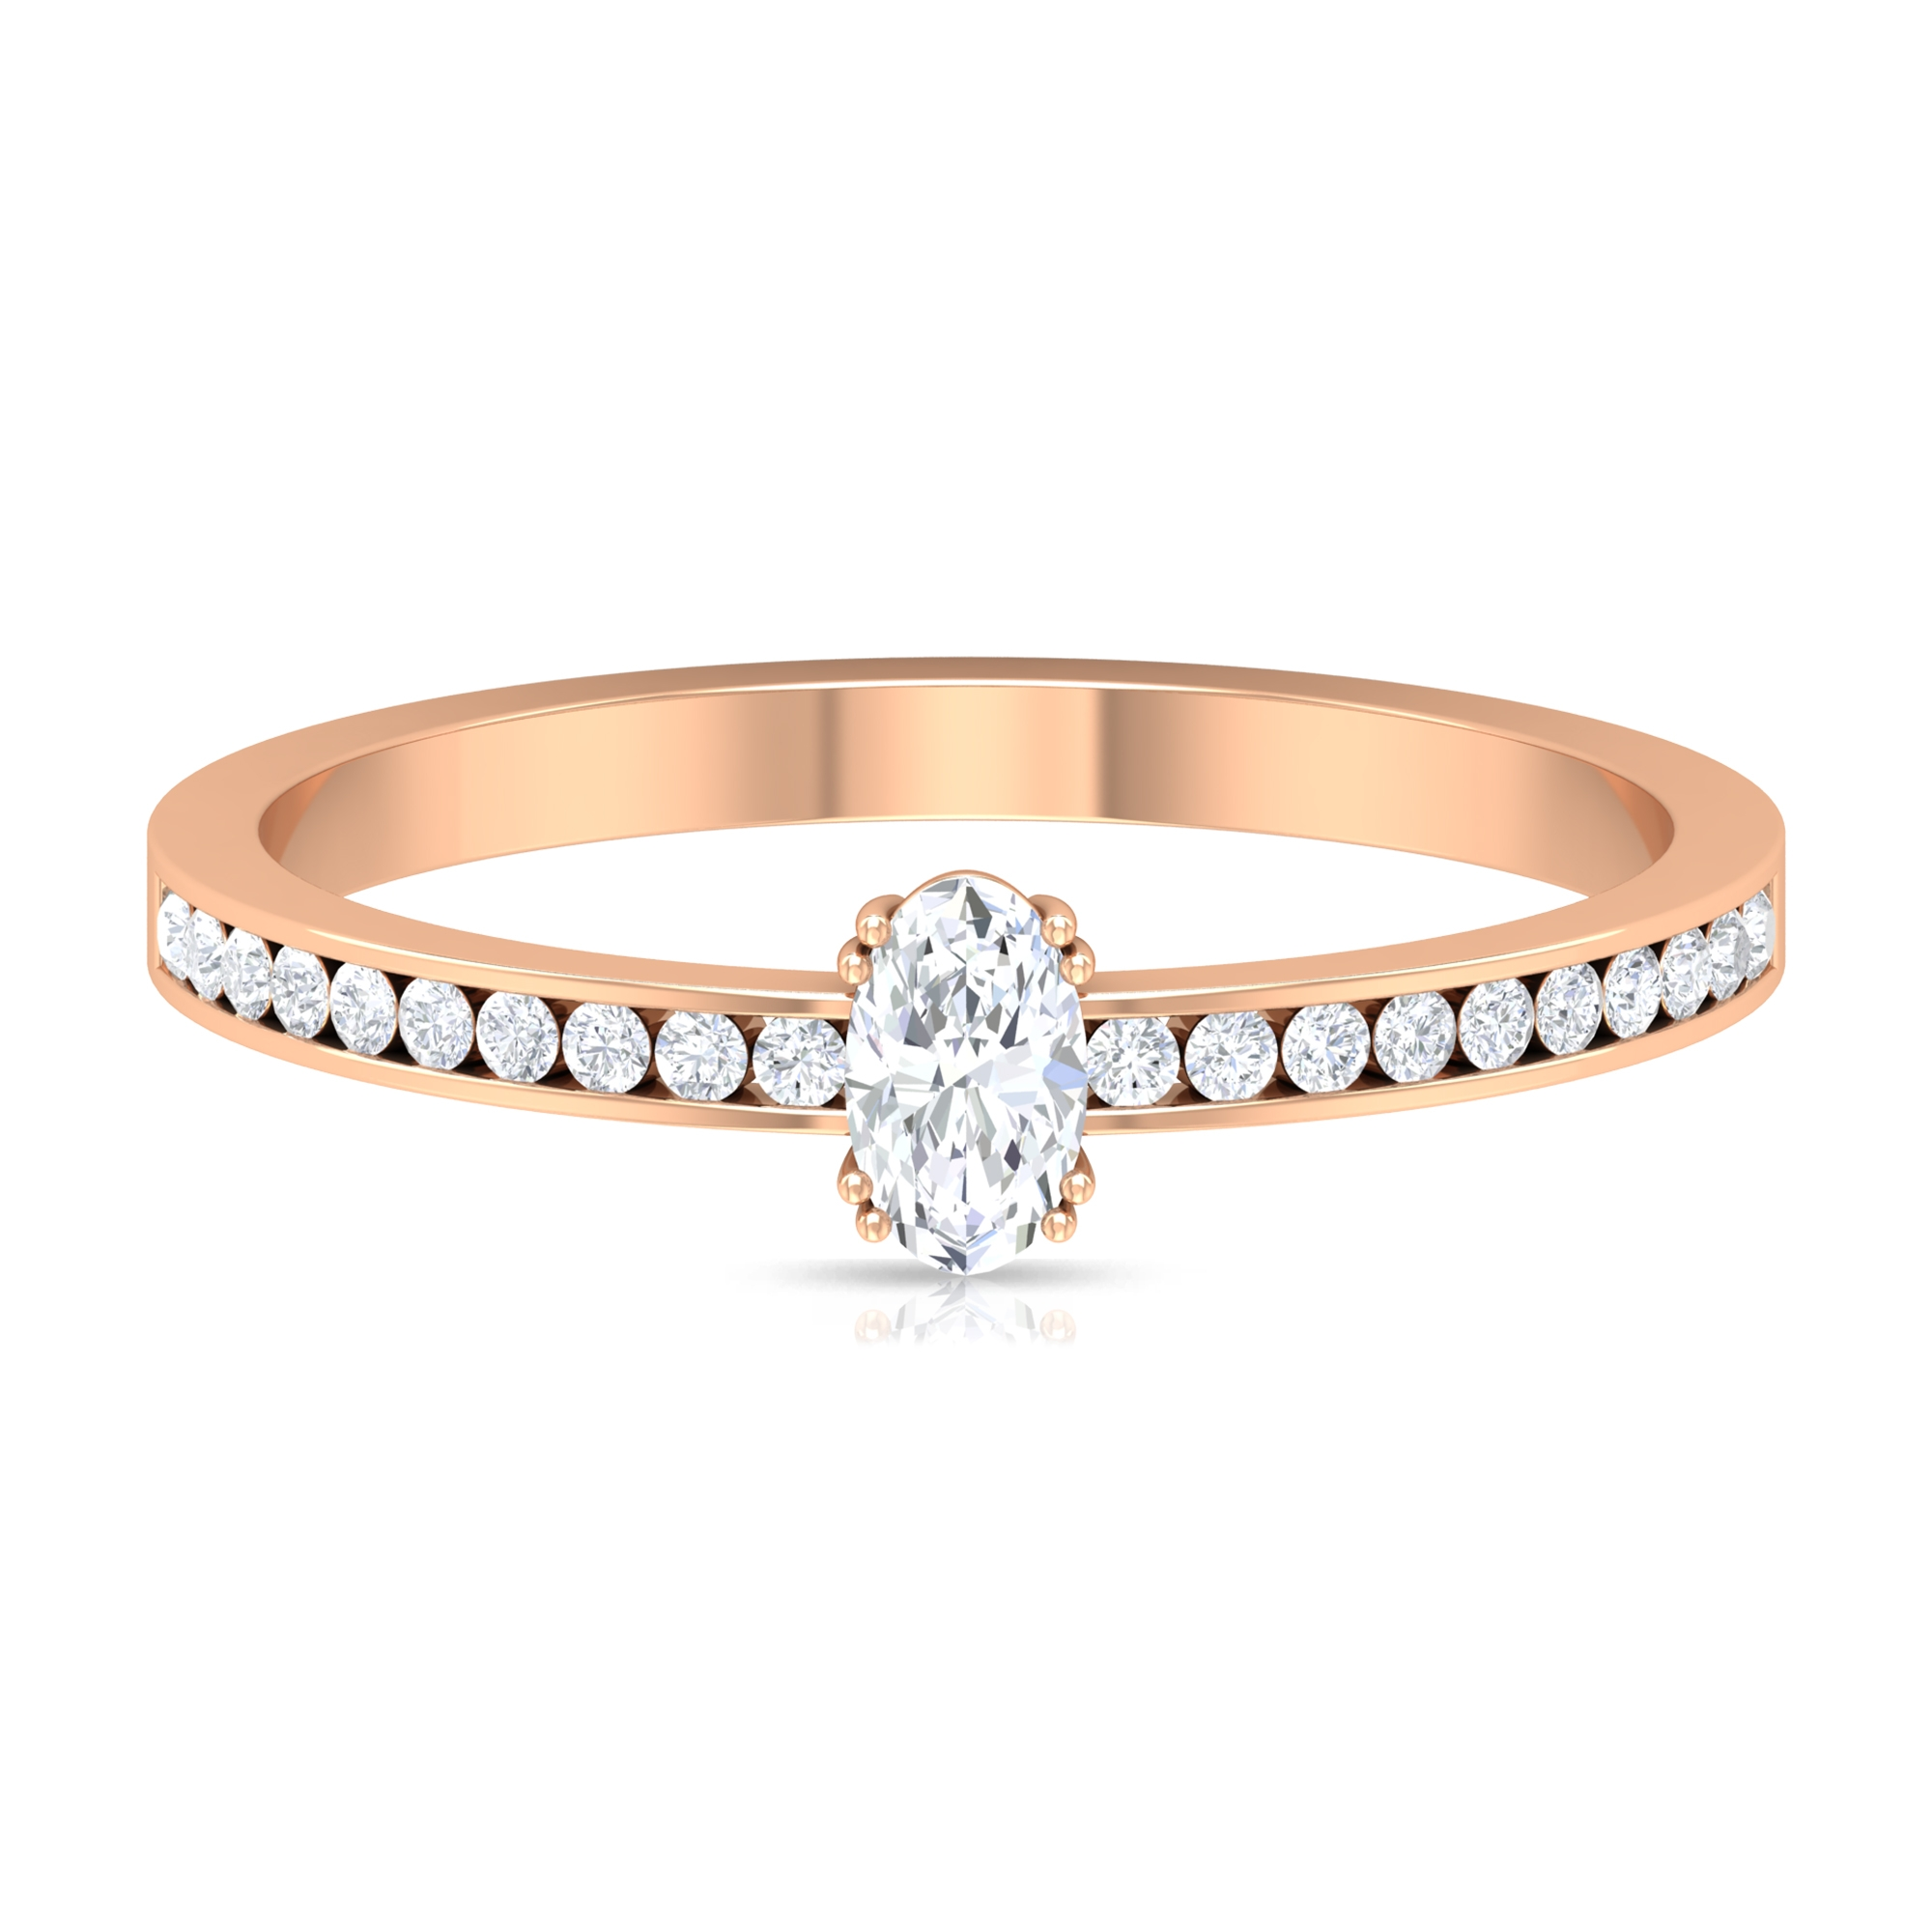 1/2 CT Diamond Solitaire Ring in Double Prong Setting with Channel Set Diamond